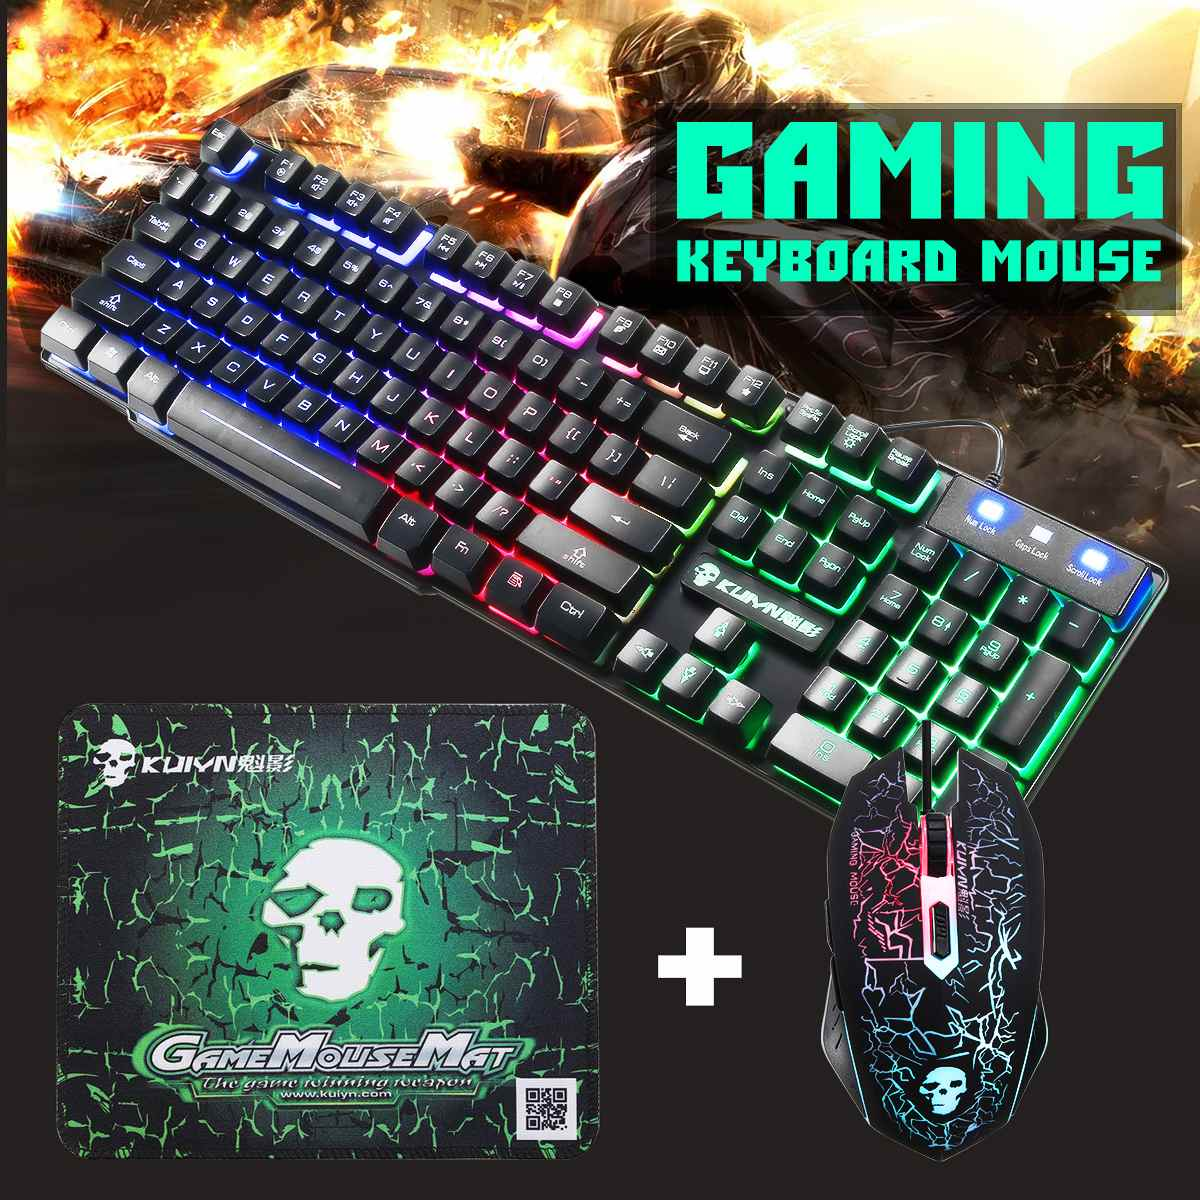 Colorful Backlight USB Wired Ergonomic Gaming Keyboard 2400DPI LED Gaming Mouse Combo with Mouse Pad SetColorful Backlight USB Wired Ergonomic Gaming Keyboard 2400DPI LED Gaming Mouse Combo with Mouse Pad Set